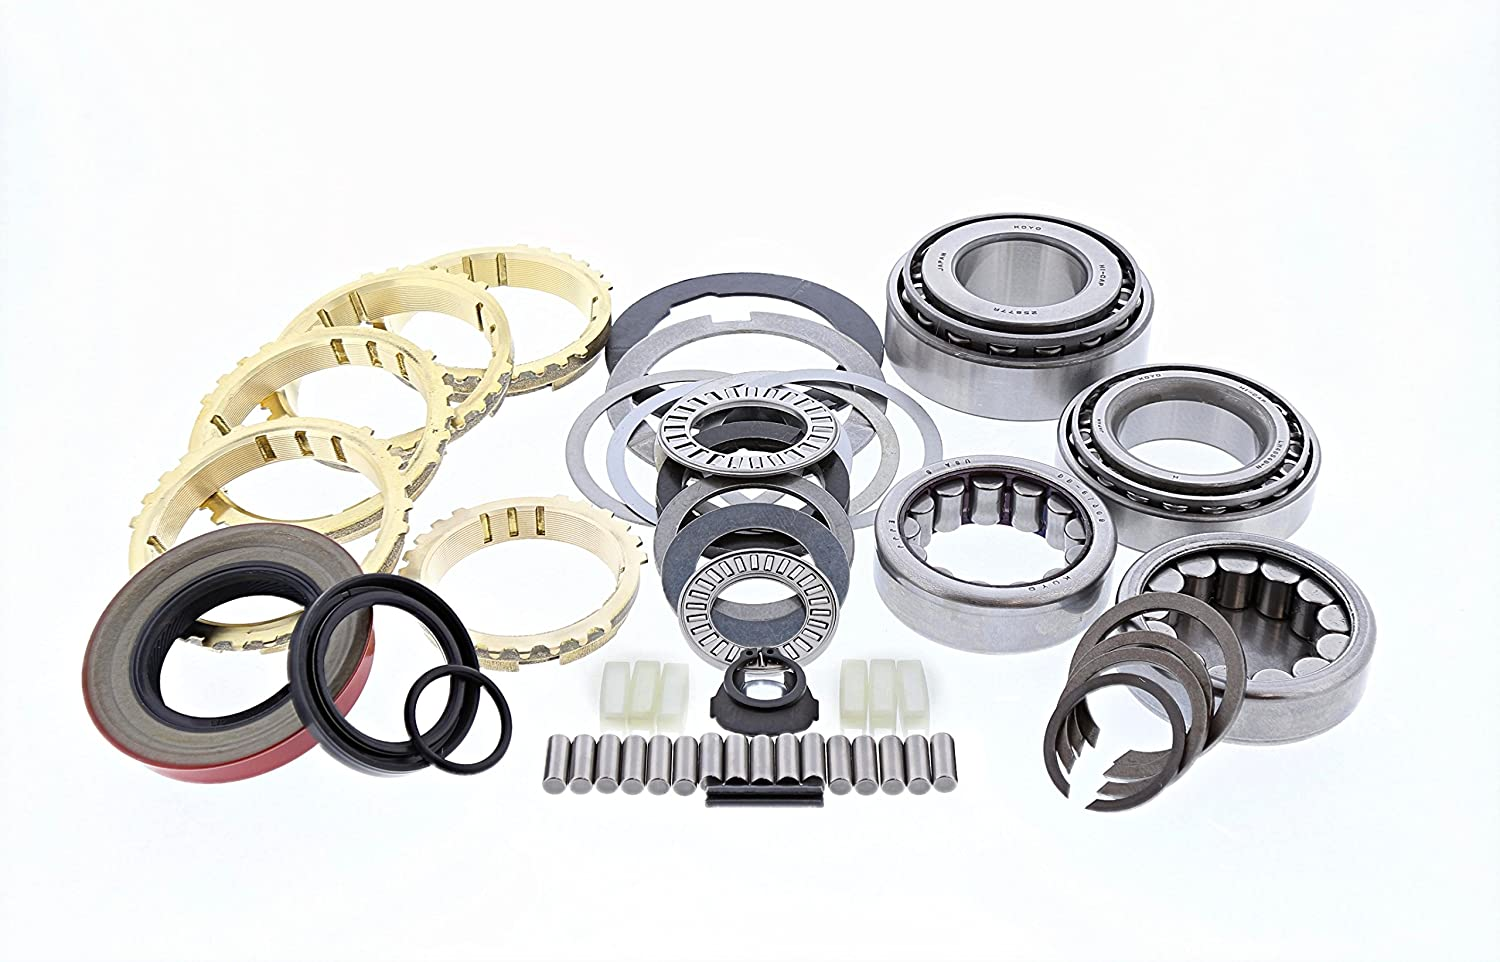 BK-107WS T-5 Non World Class 5 Speed Trans Rebuild Overhaul Kit GM Chevy Ford